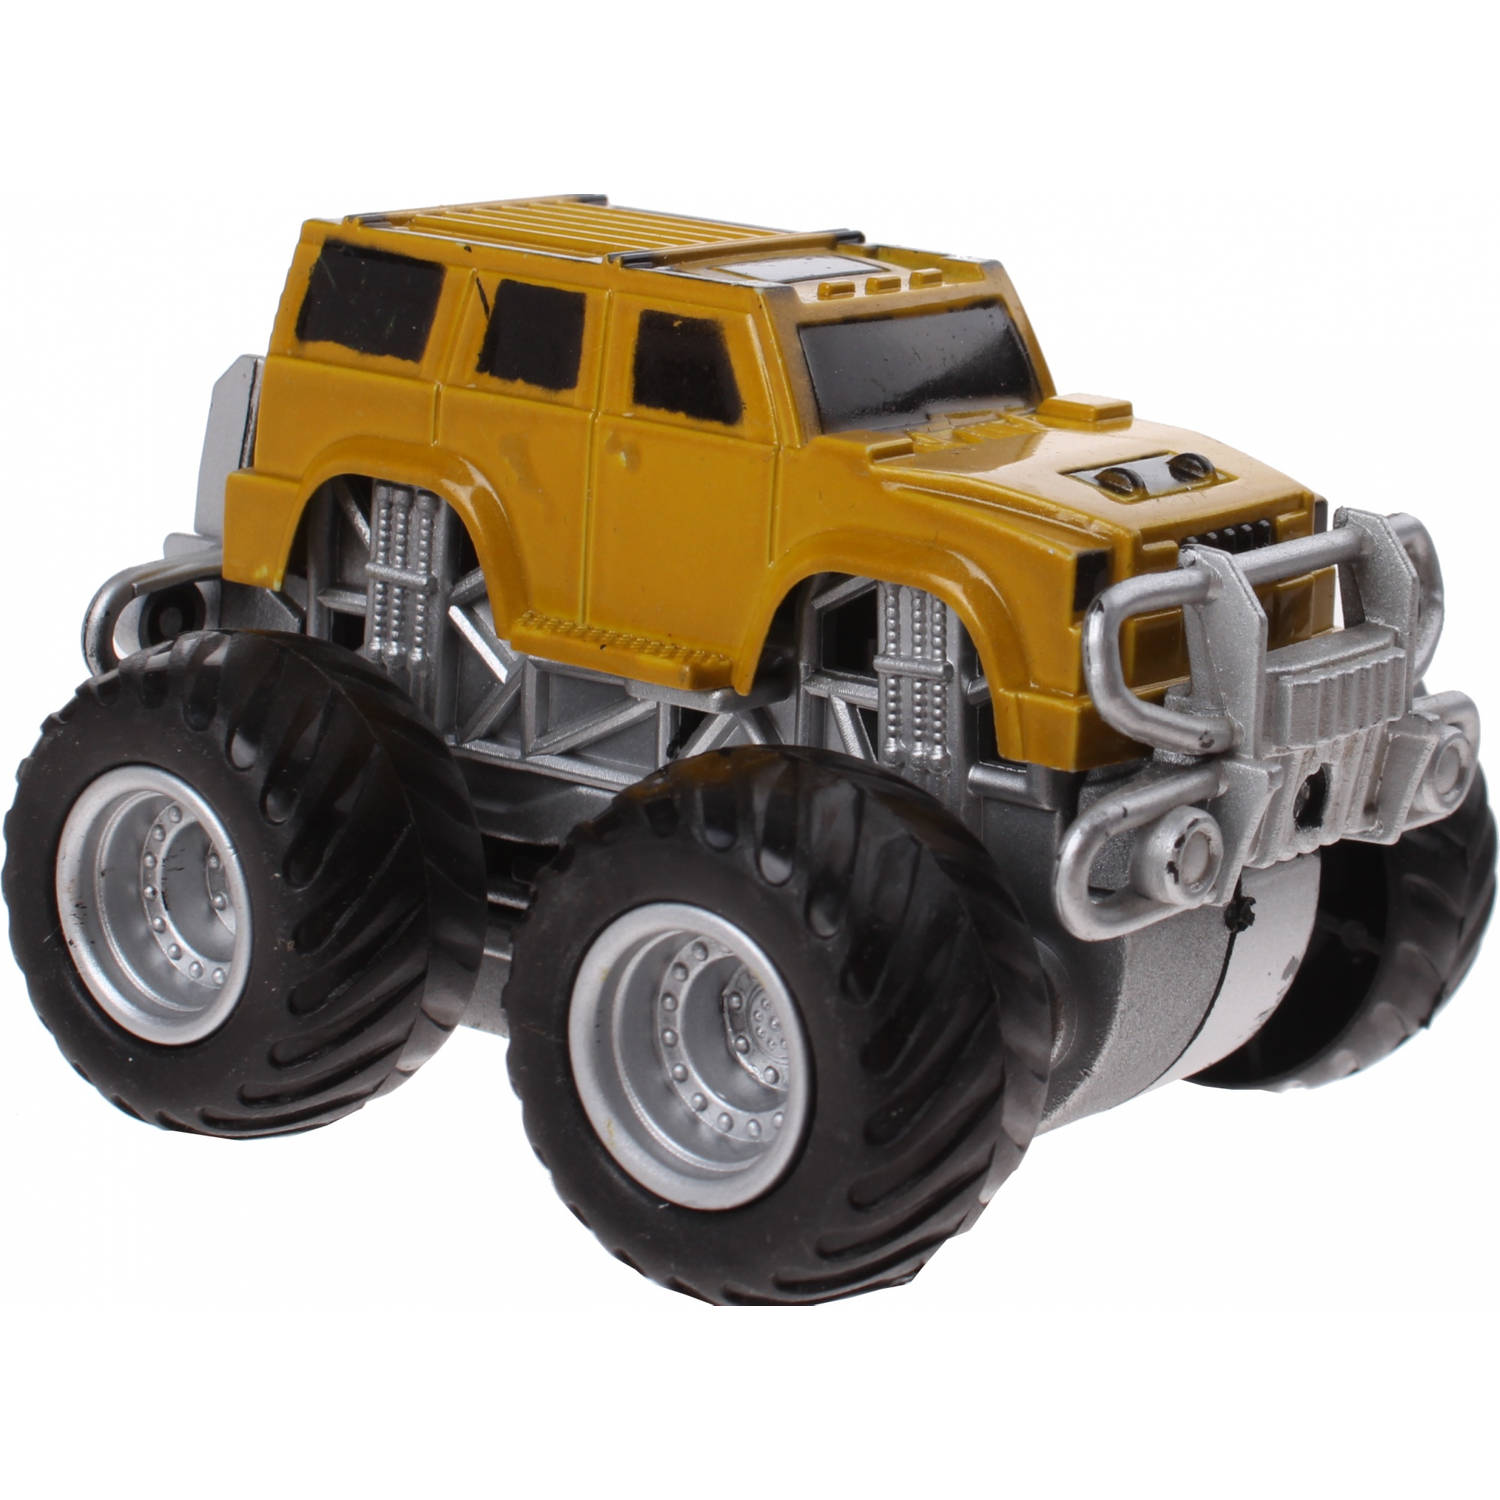 Jonotoys monstertruck Big Foot Drive 8.5 cm geel